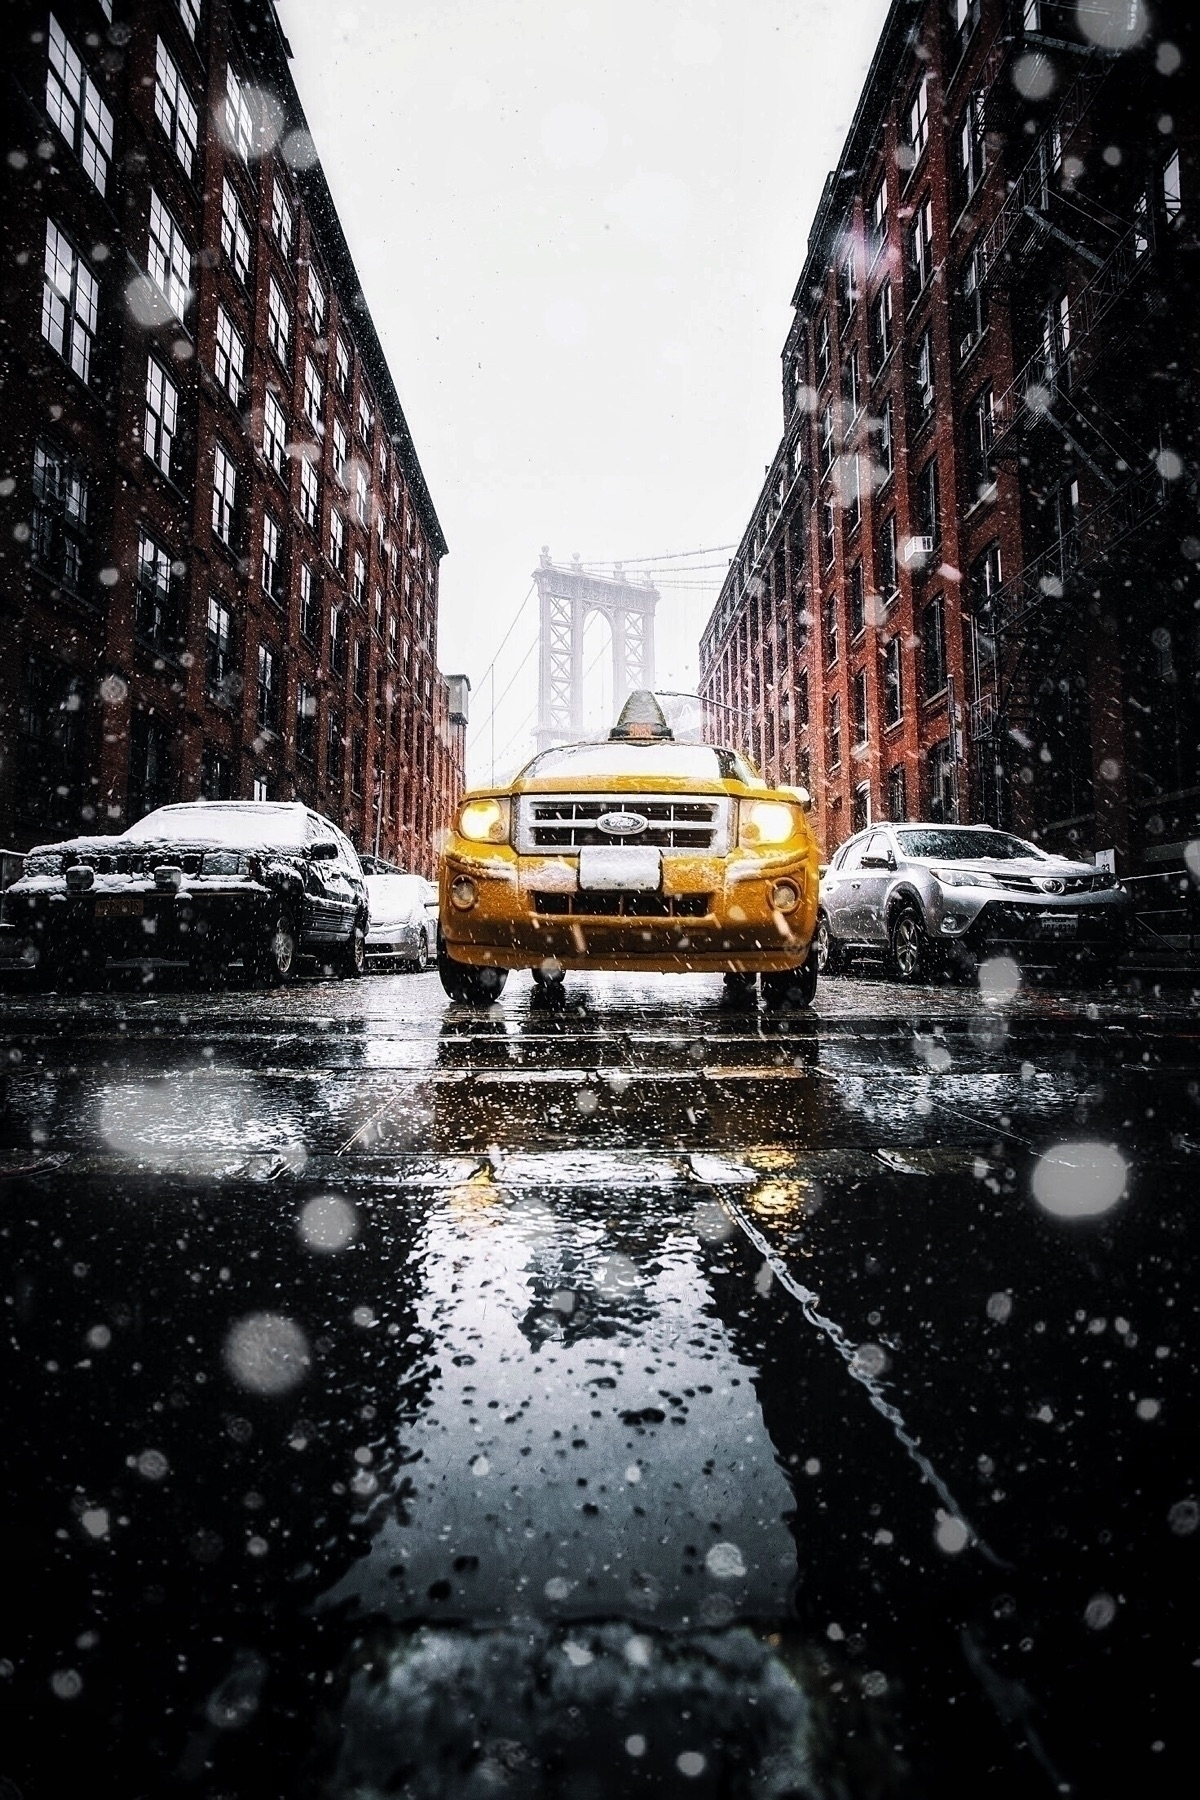 taxi, nyc, dumbo, snow, winter - imthejam | ello